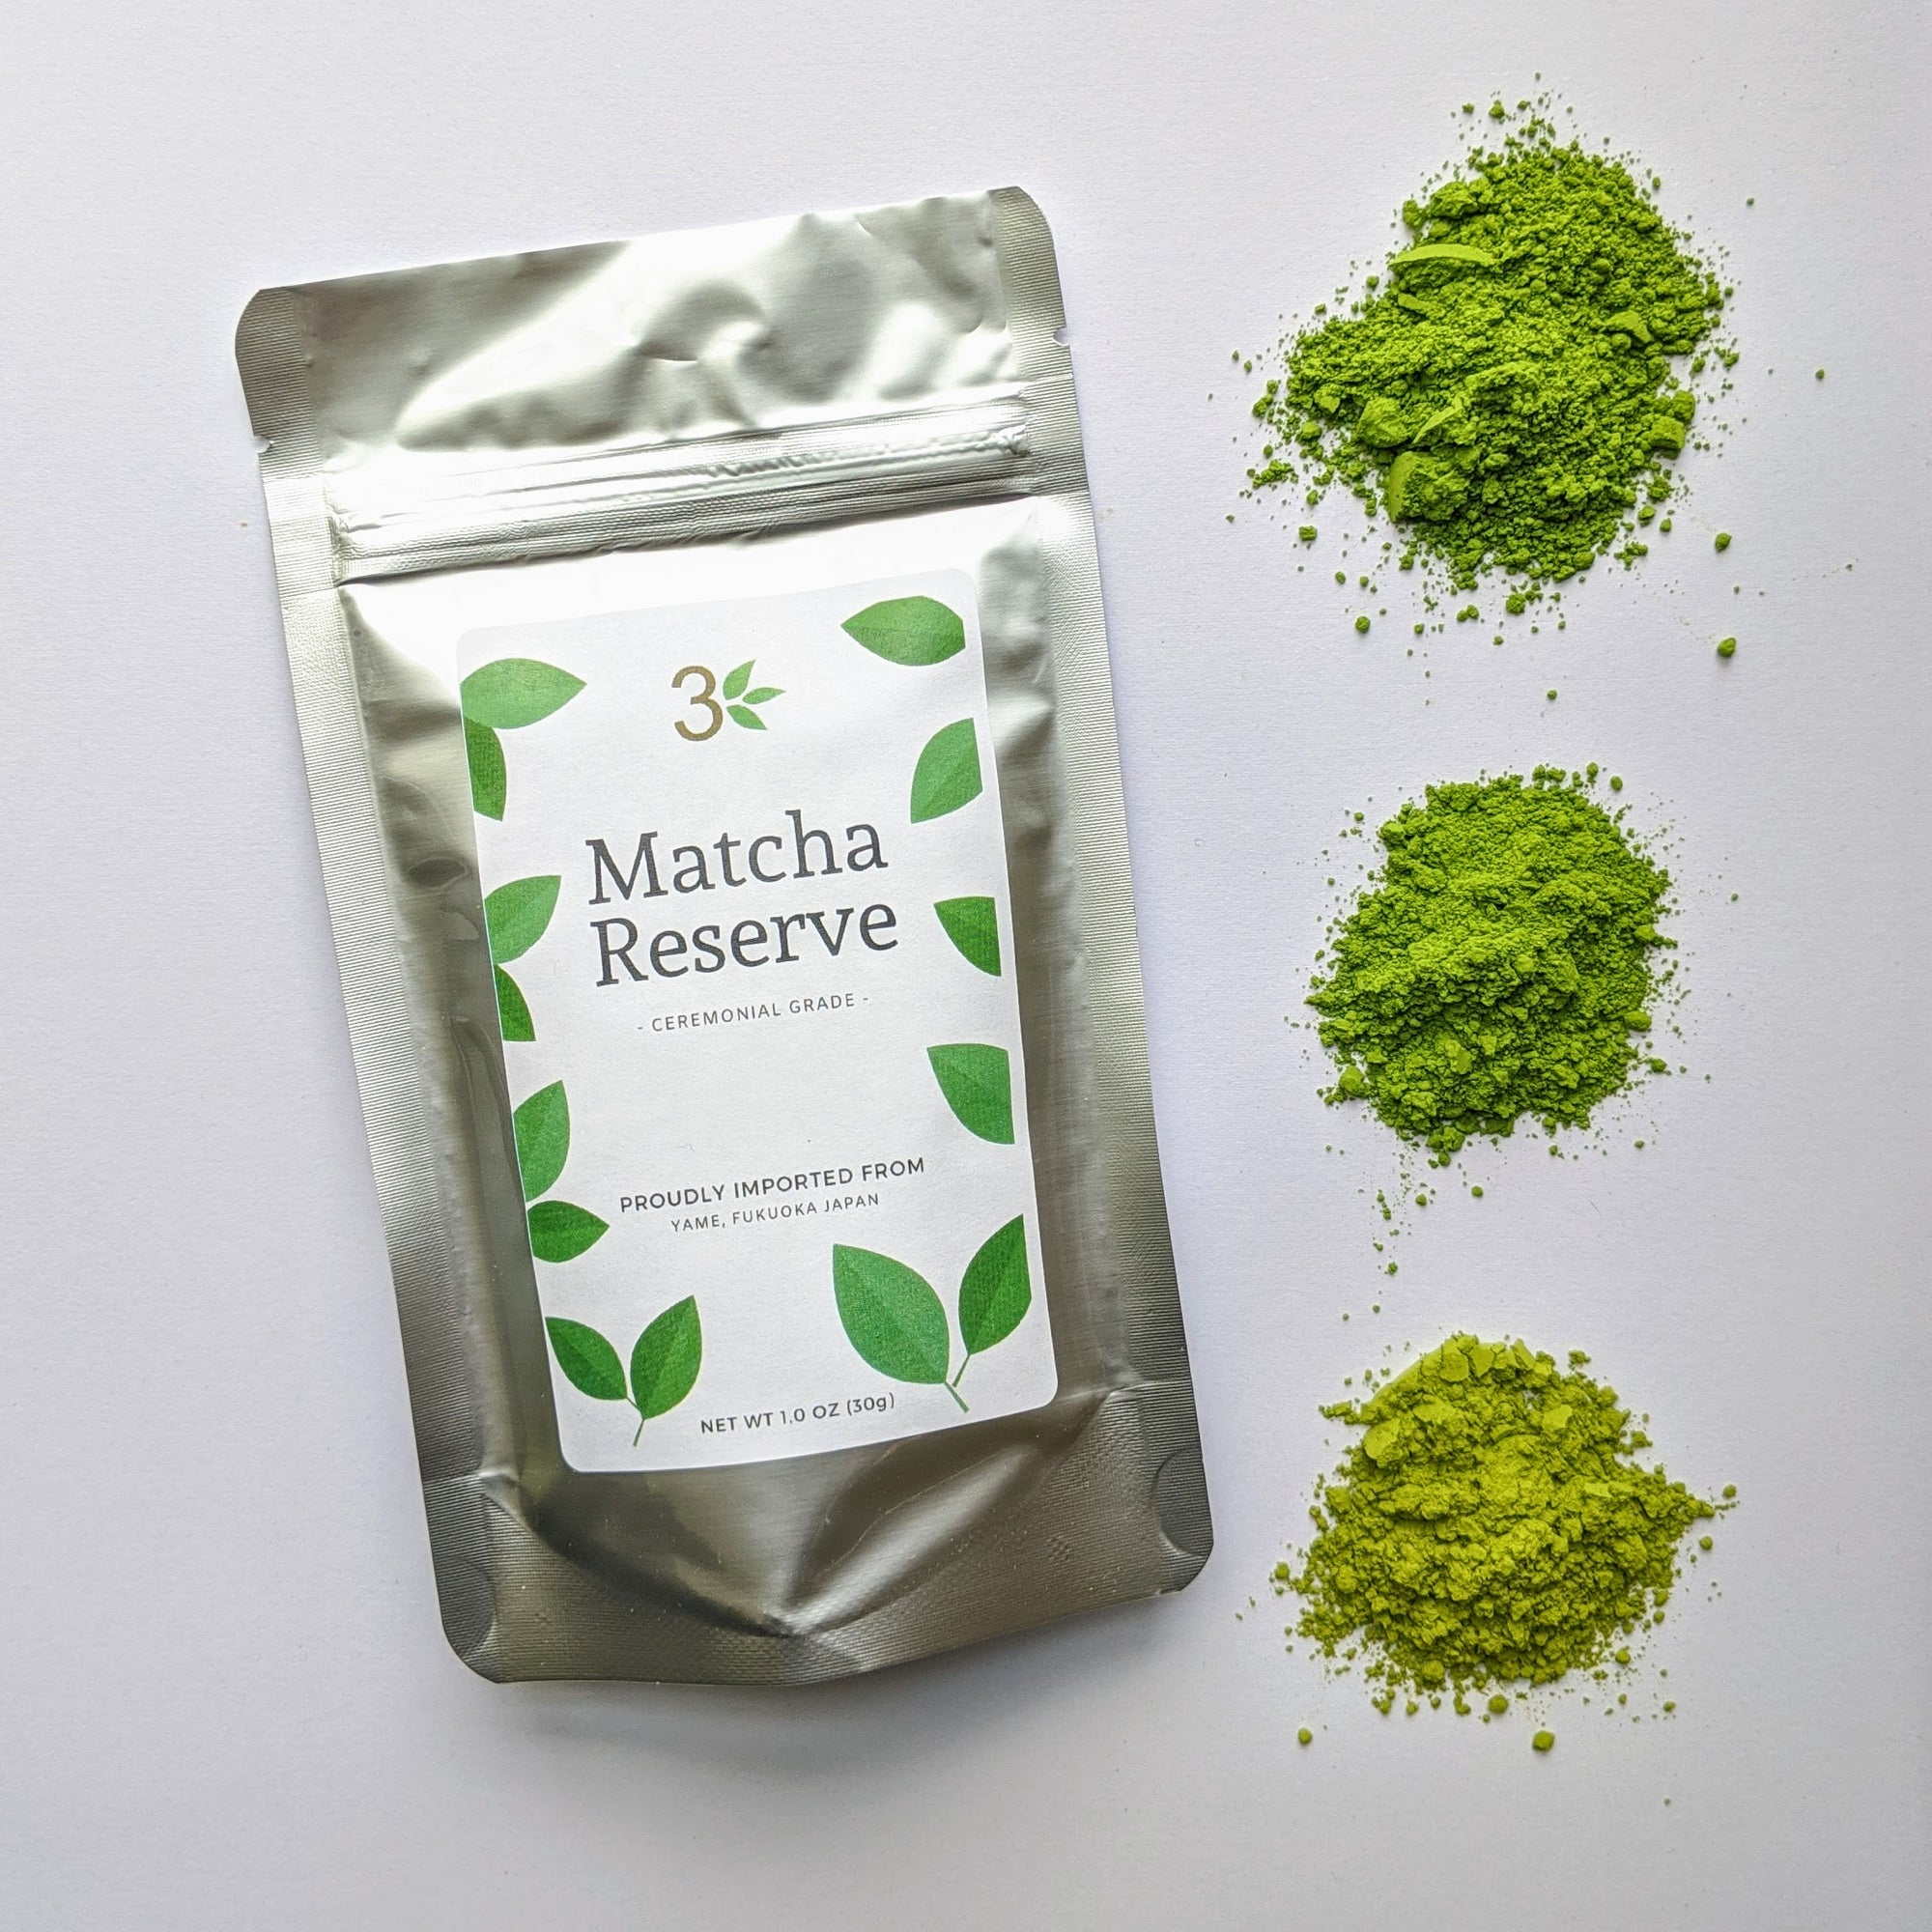 Introducing... Matcha Reserve!